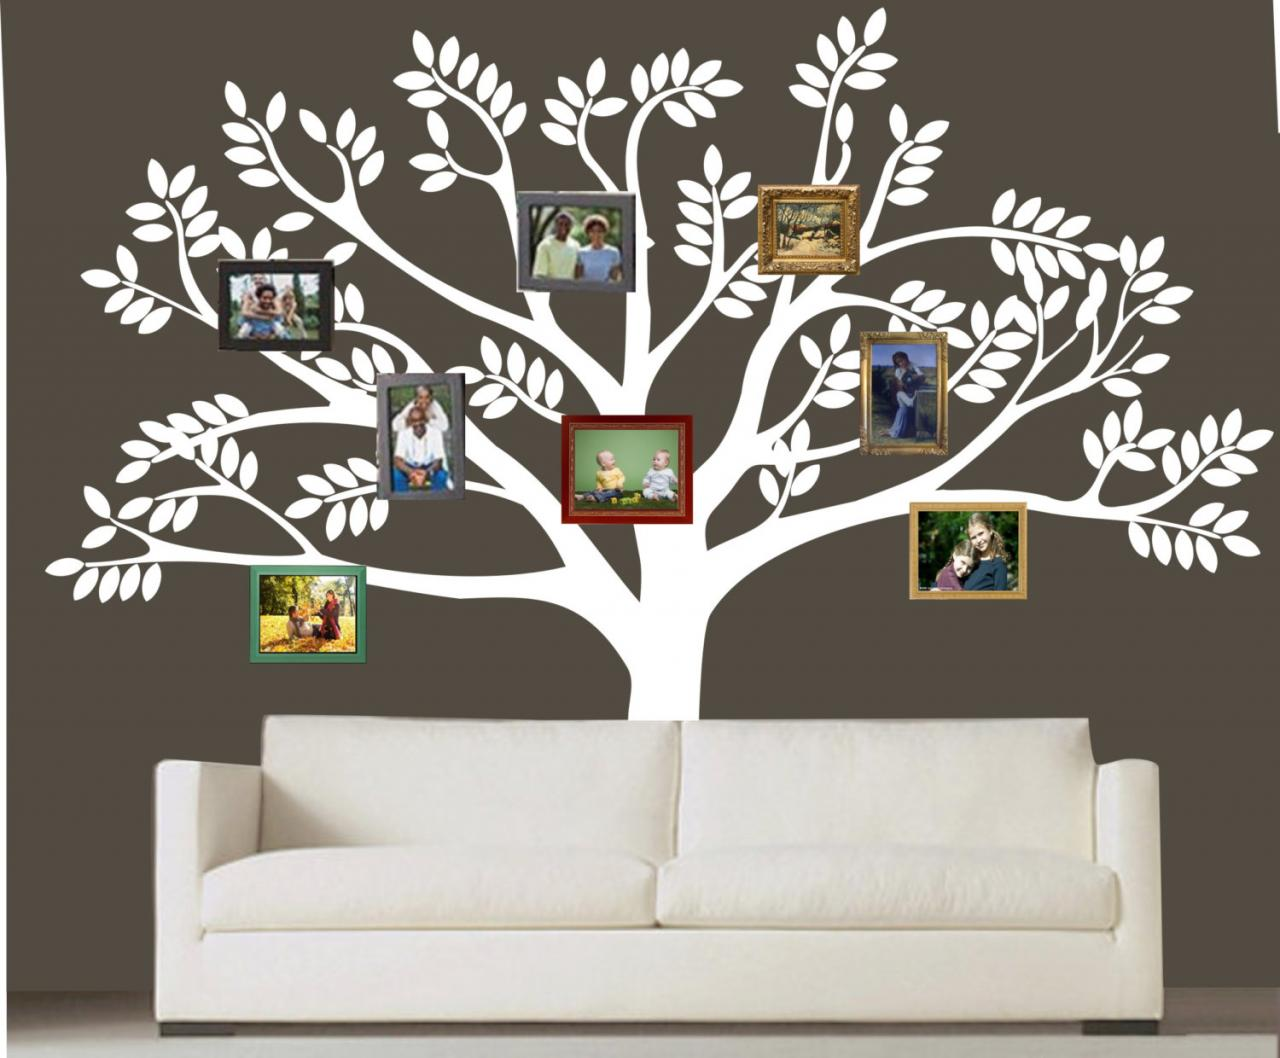 custom family tree decal vinyl wall decal photo white tree decals leaf leaves home baby room. Black Bedroom Furniture Sets. Home Design Ideas